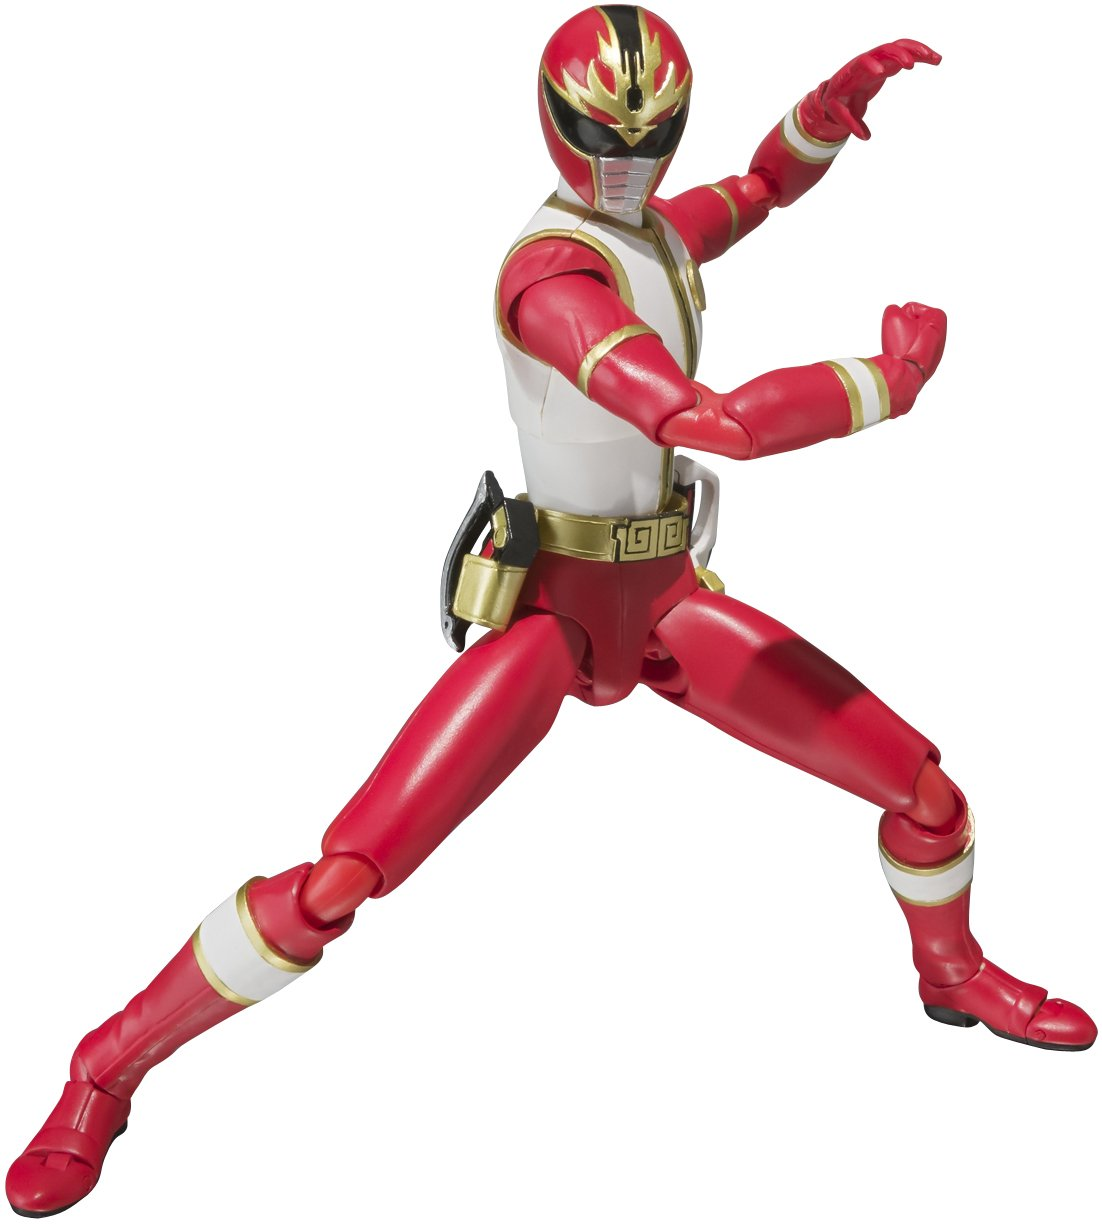 Sh Figuarts Dragon Ranger (Japan Import) by Bandai